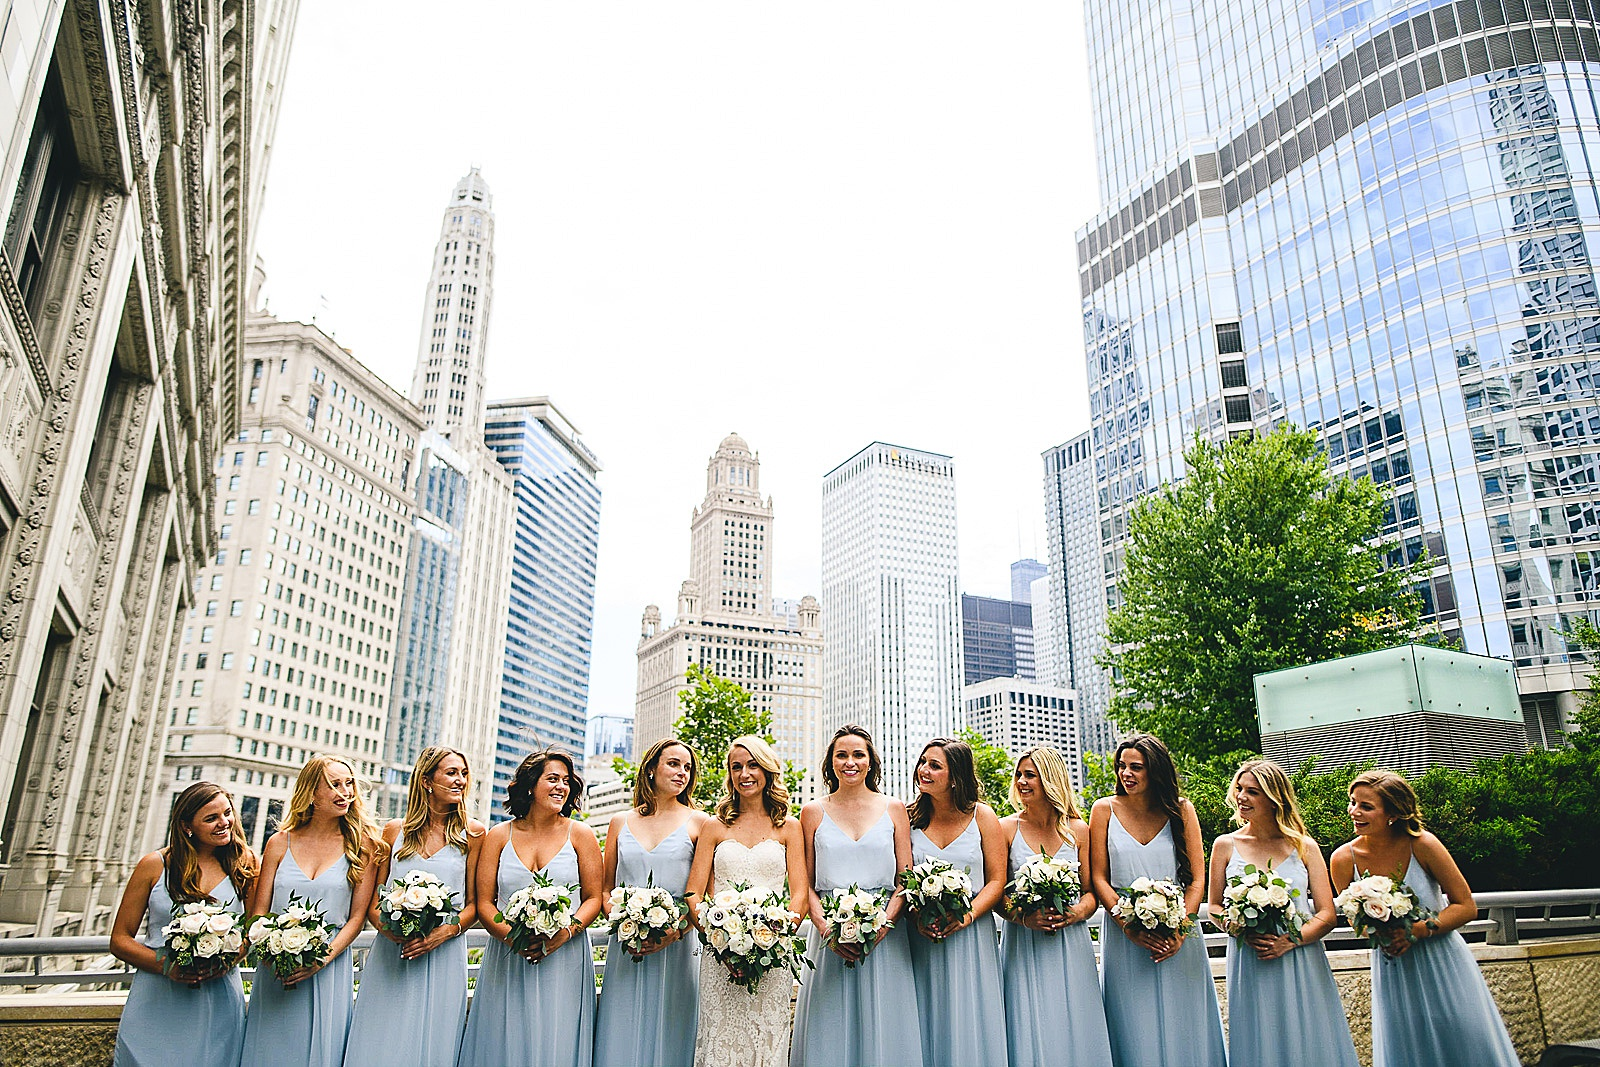 27 bridesmaids inspo - Audrey + Jake's Beautiful Chicago Wedding at Chez